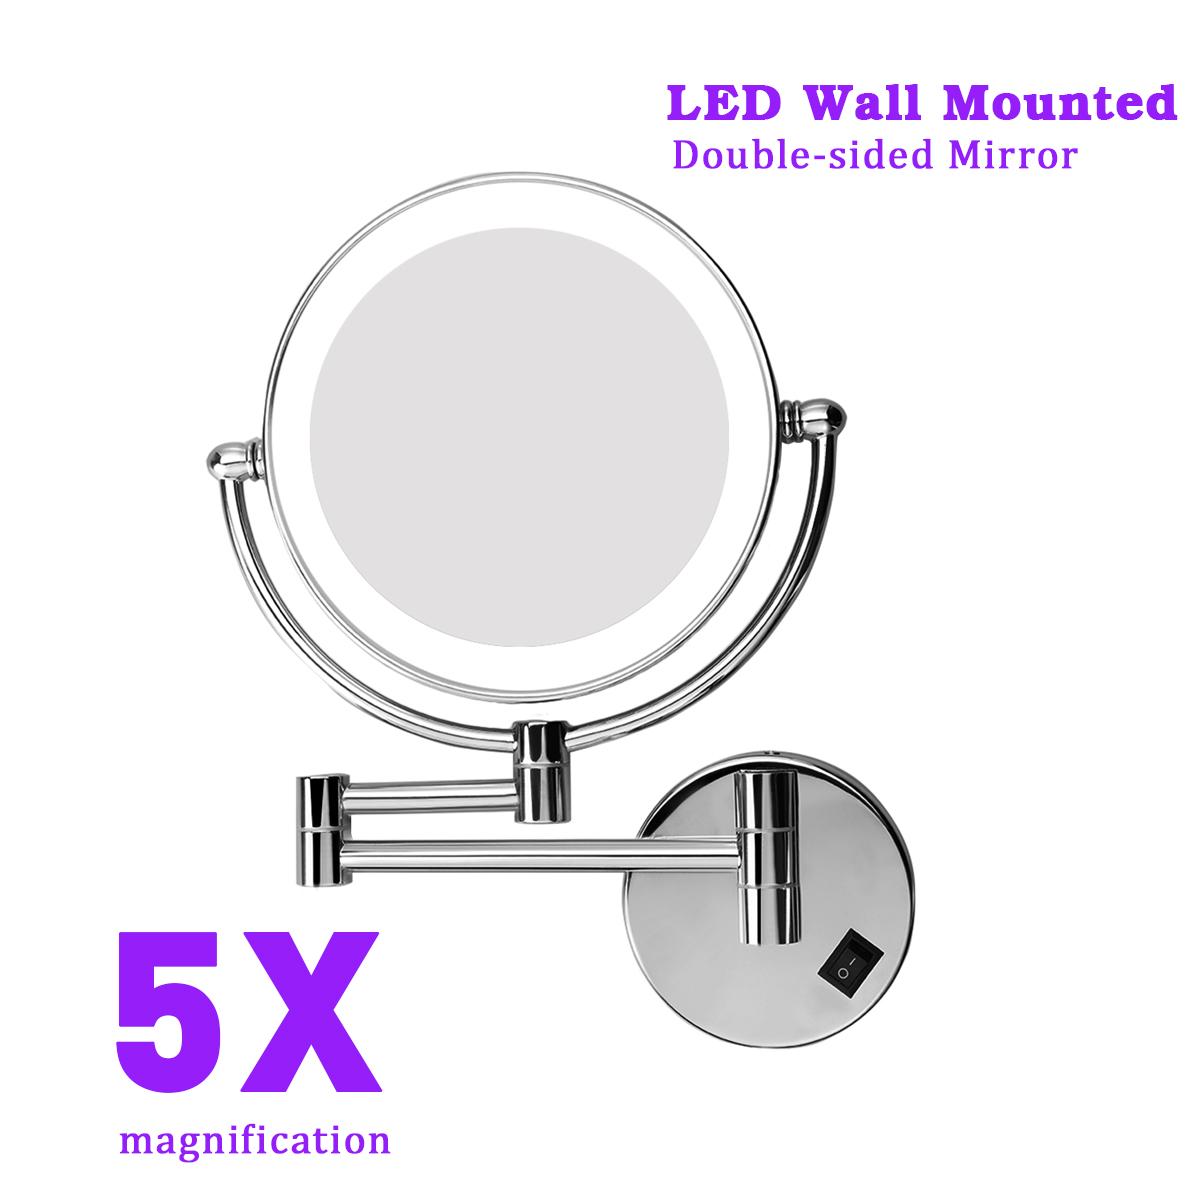 5x7x10x Magnification 8 2 Sided Led Light Wall Mount Bathroom